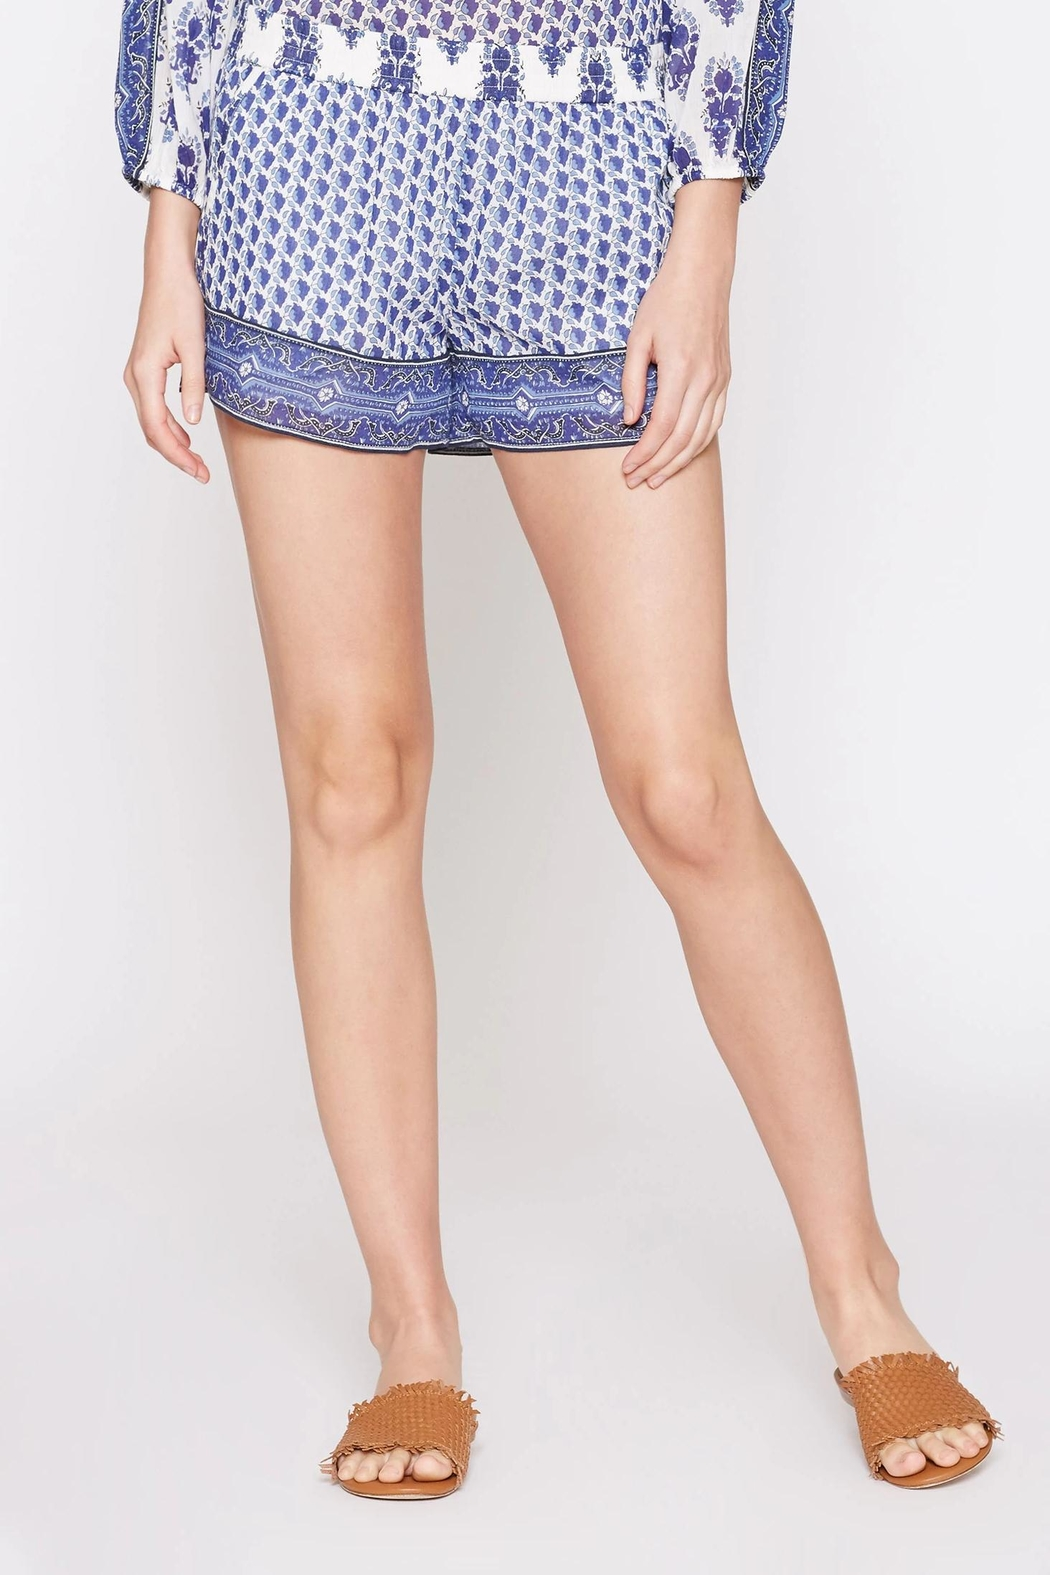 Soft Joie Beatra Printed Shorts - Front Cropped Image